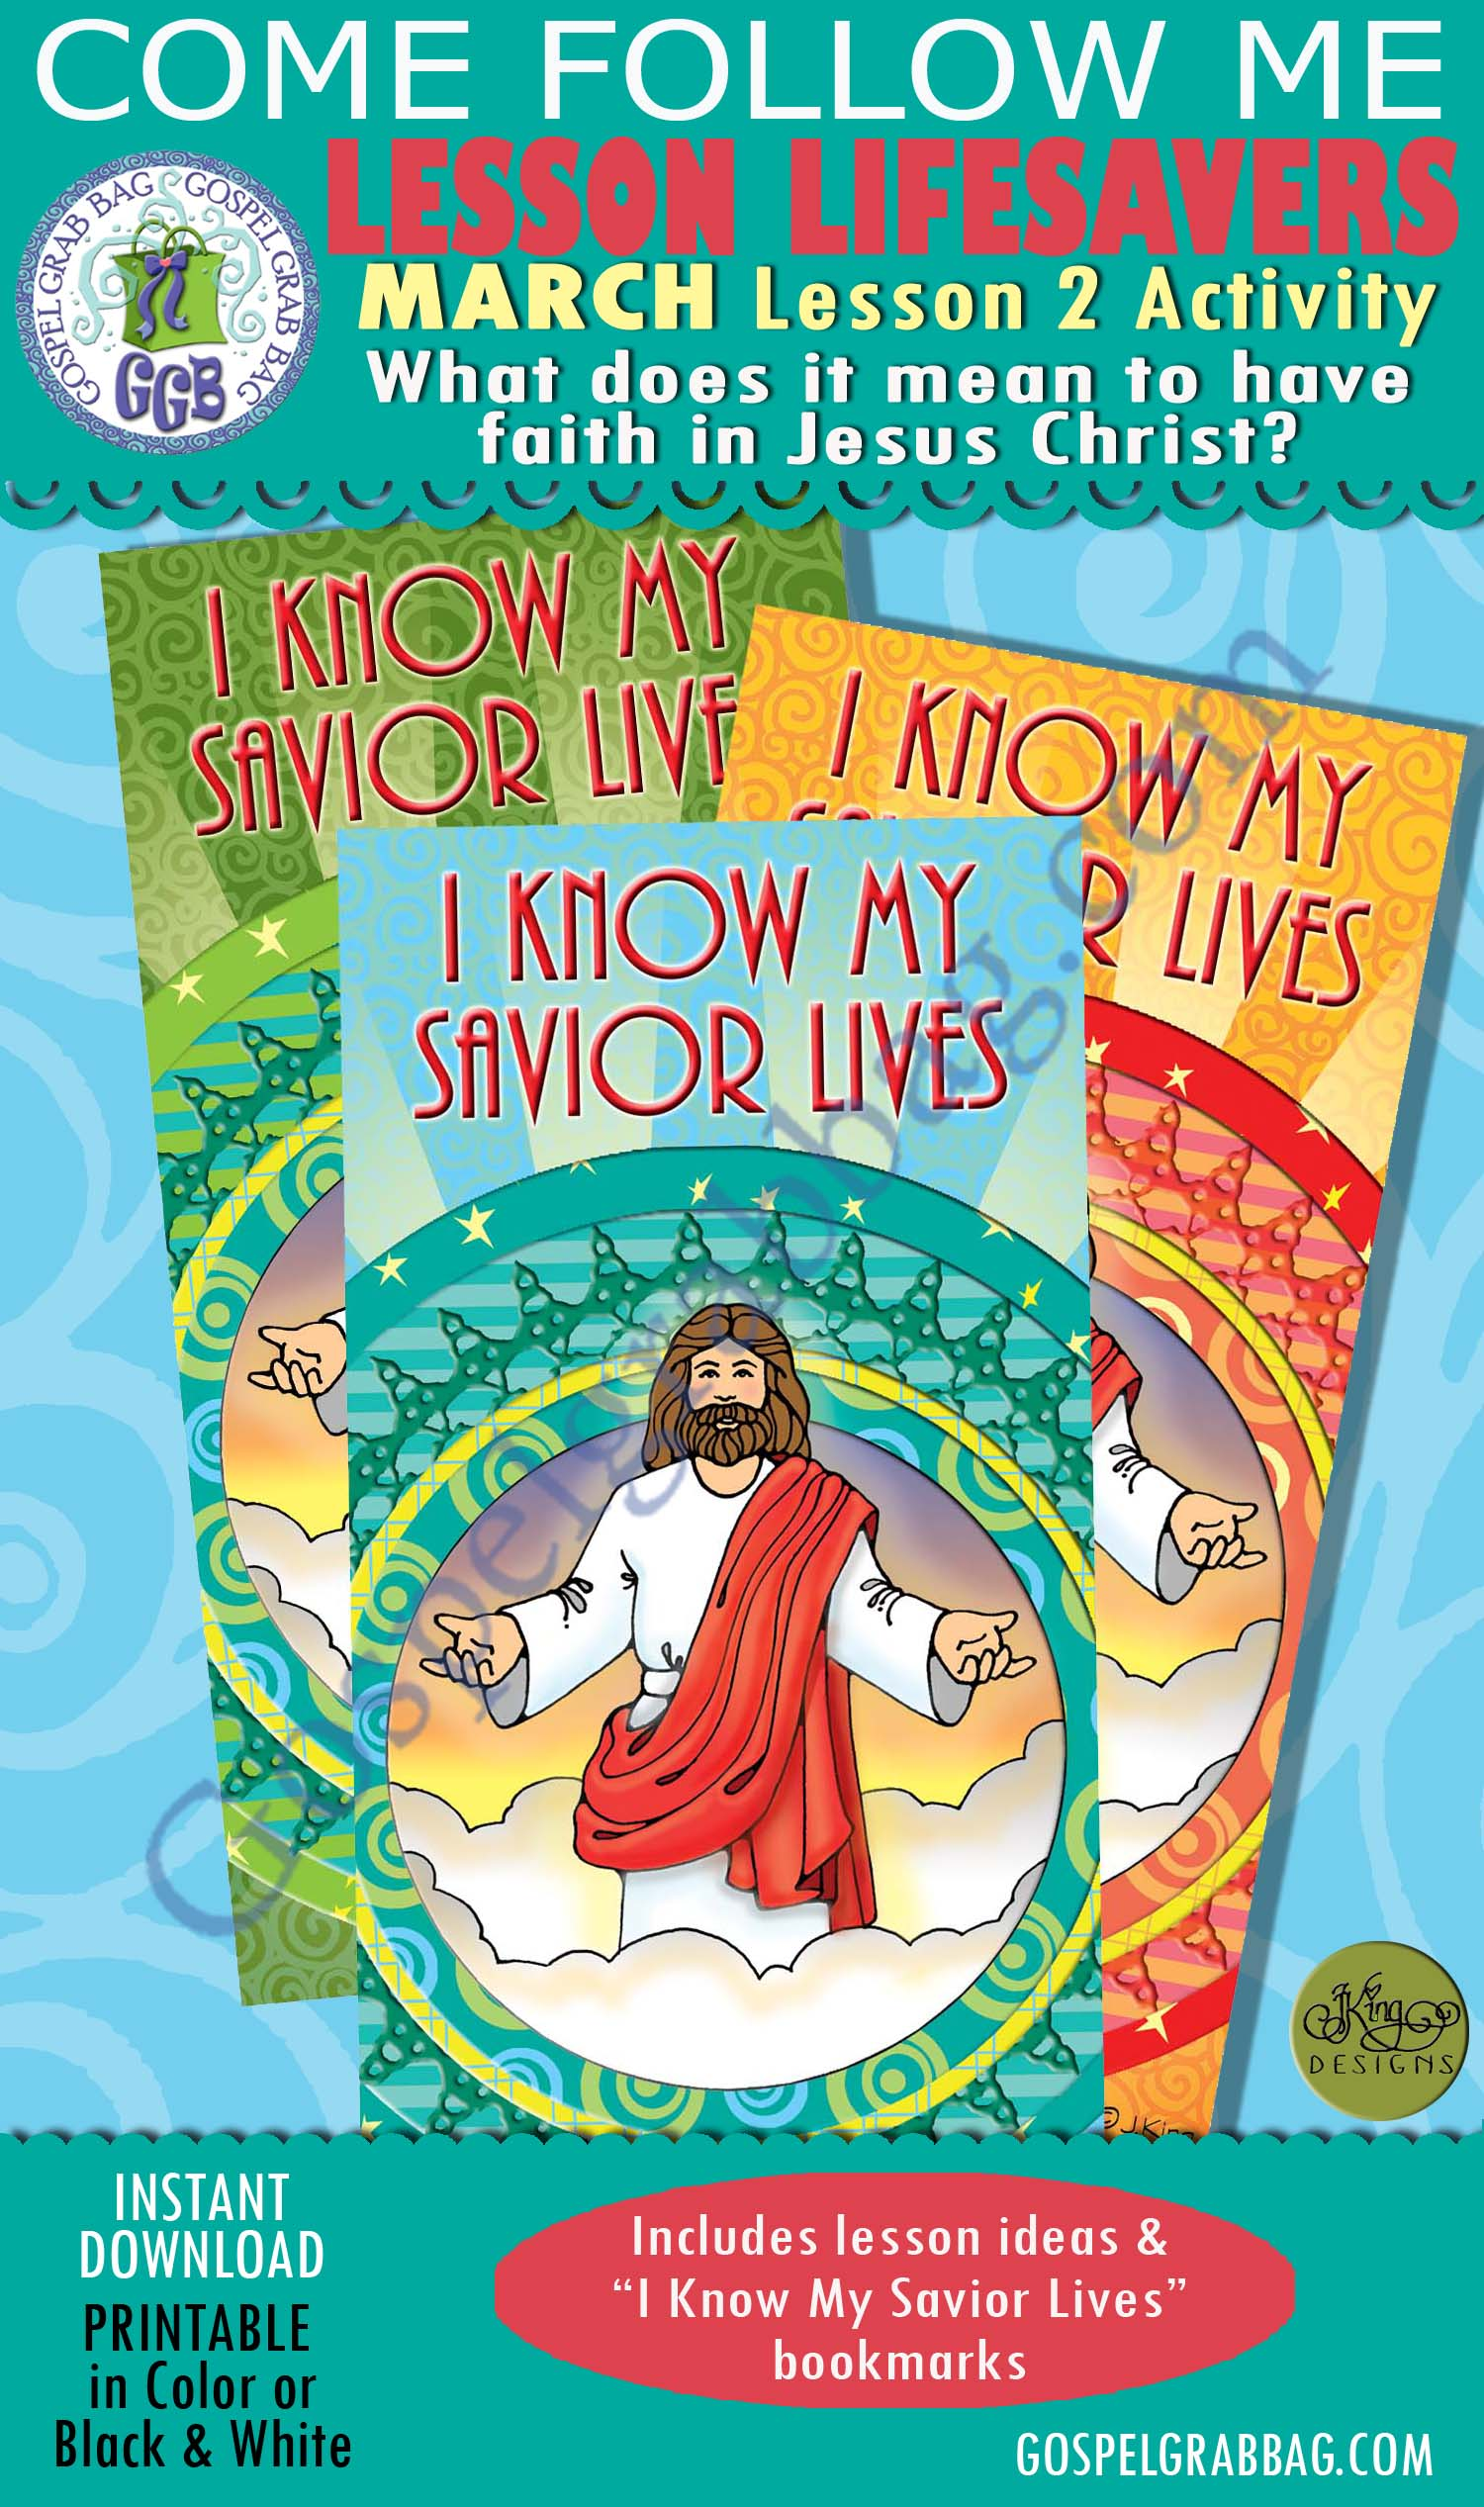 """$1.75 MARCH Lesson 2 Come Follow Me """"What does it mean to have faith in Jesus Christ?"""" ACTIVITY: I Know My Savior Lives bookmarks"""